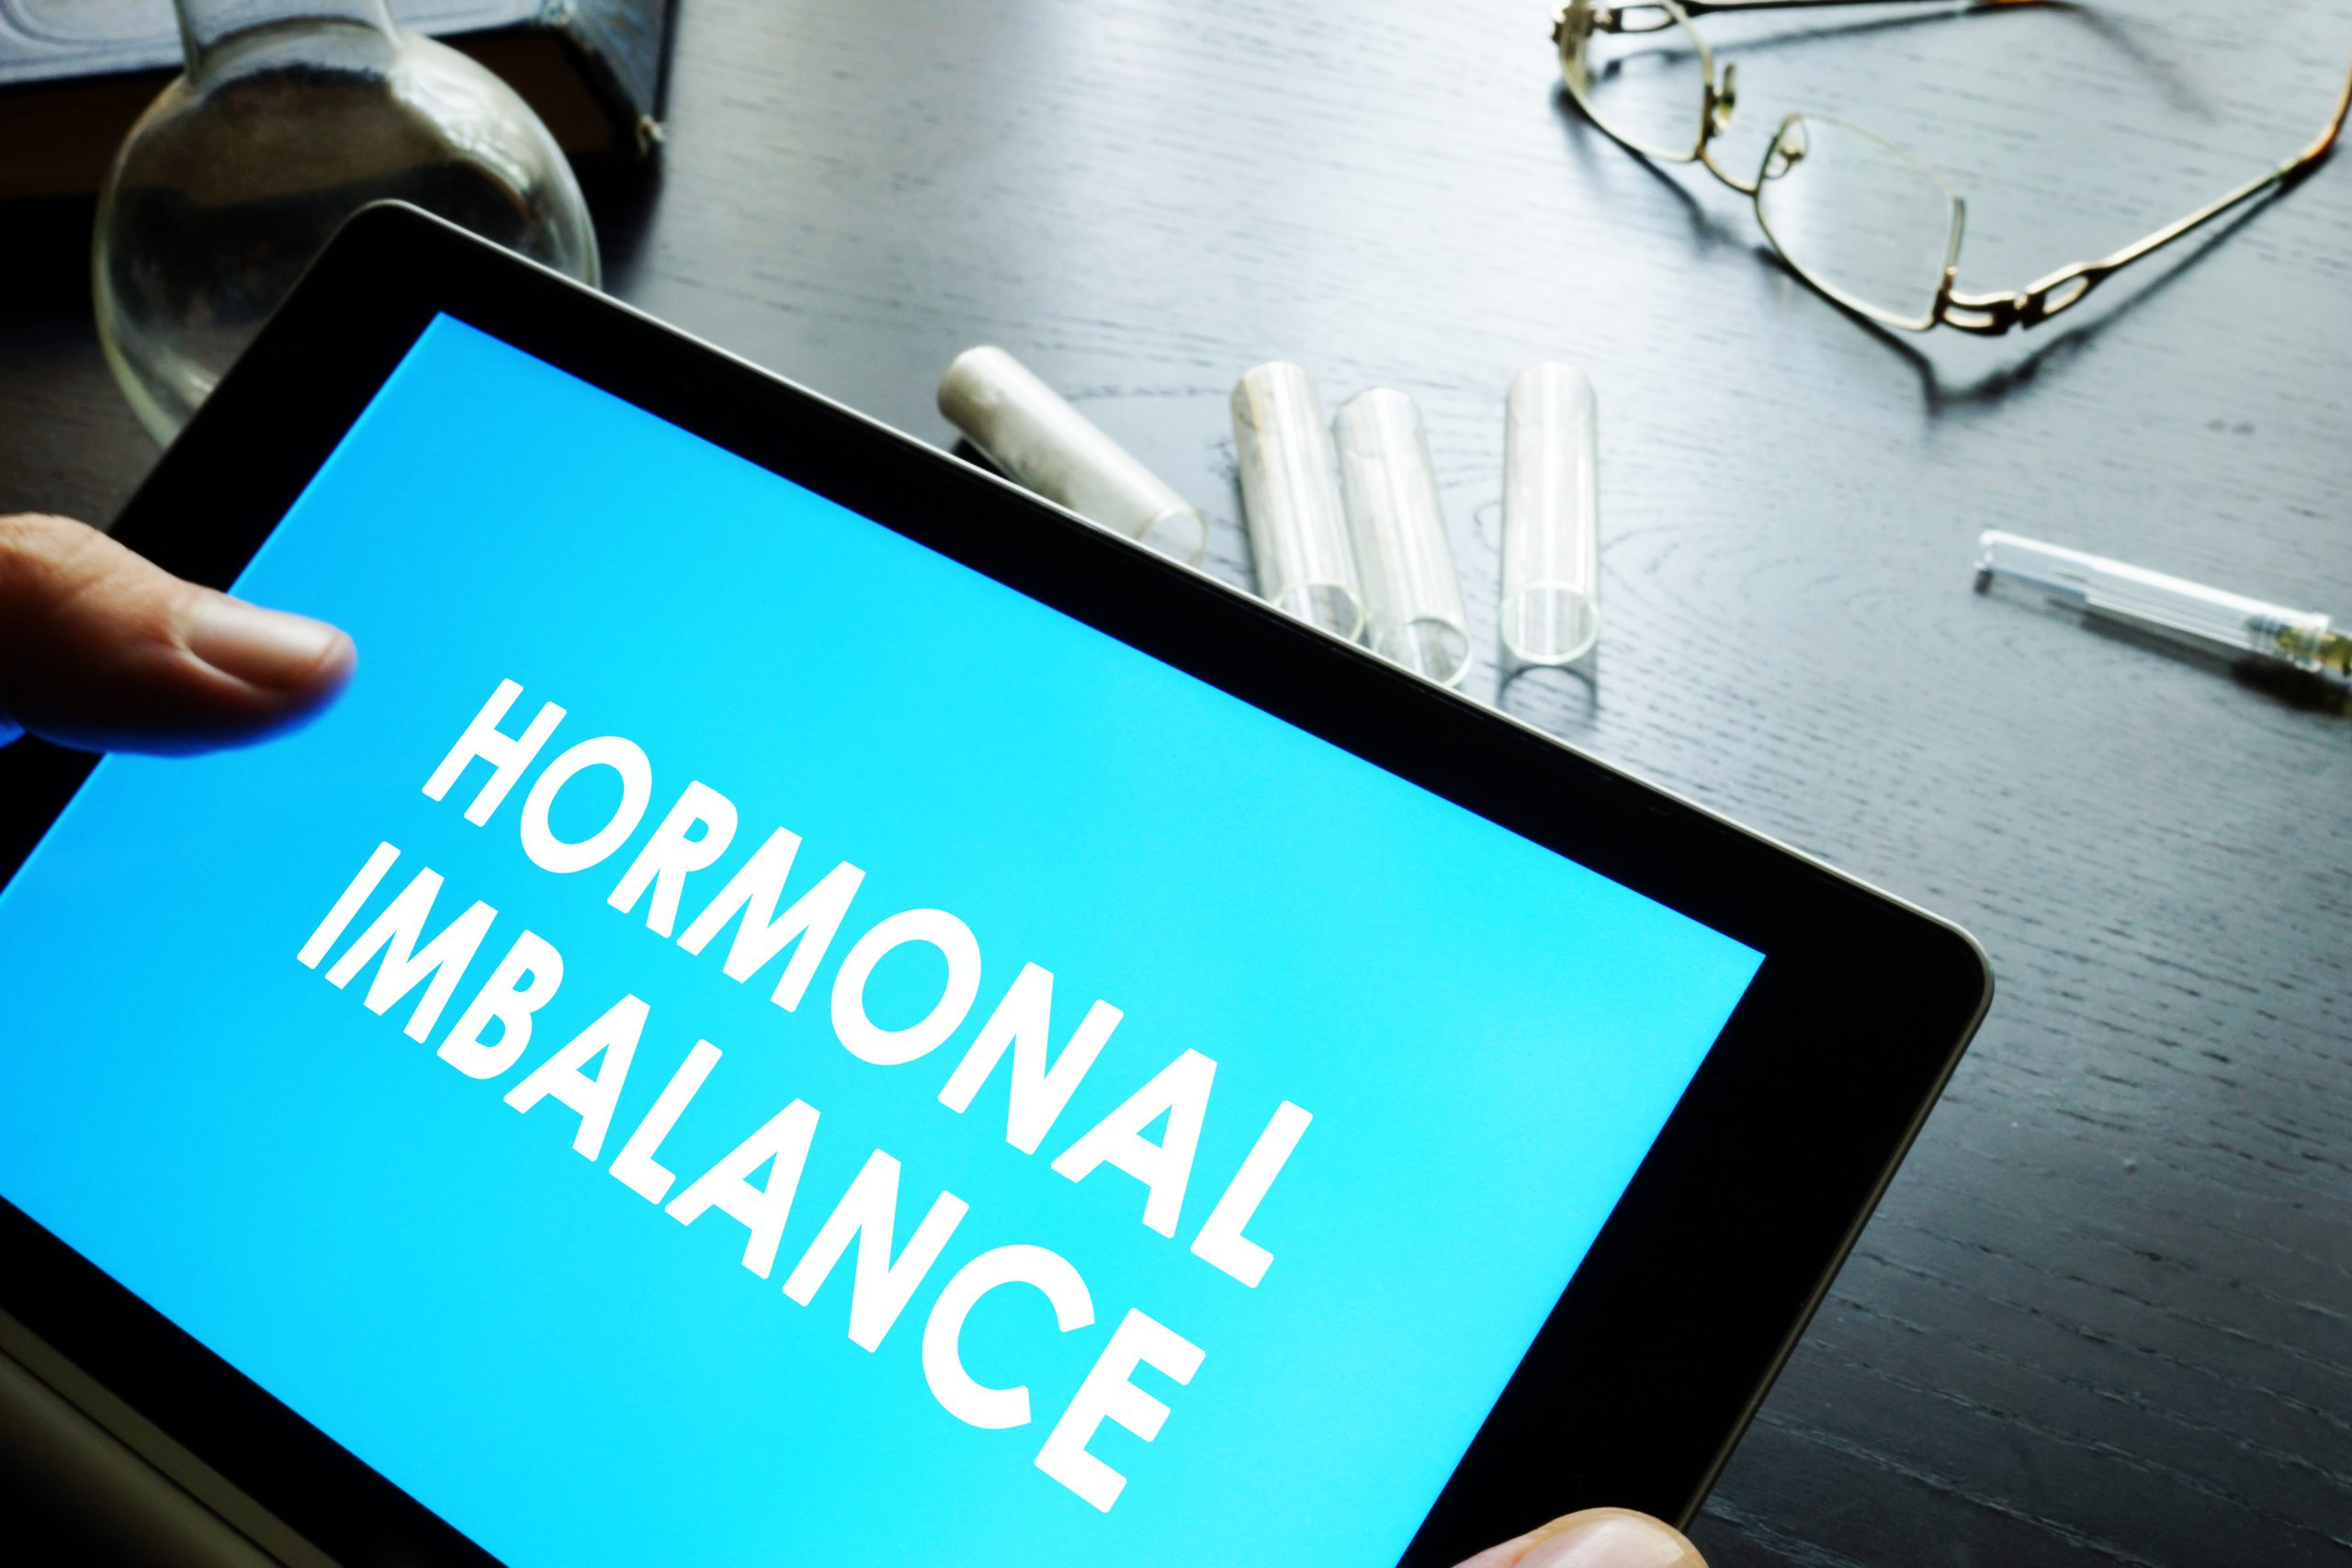 Hormonal imbalance treatment in Dallas Tx